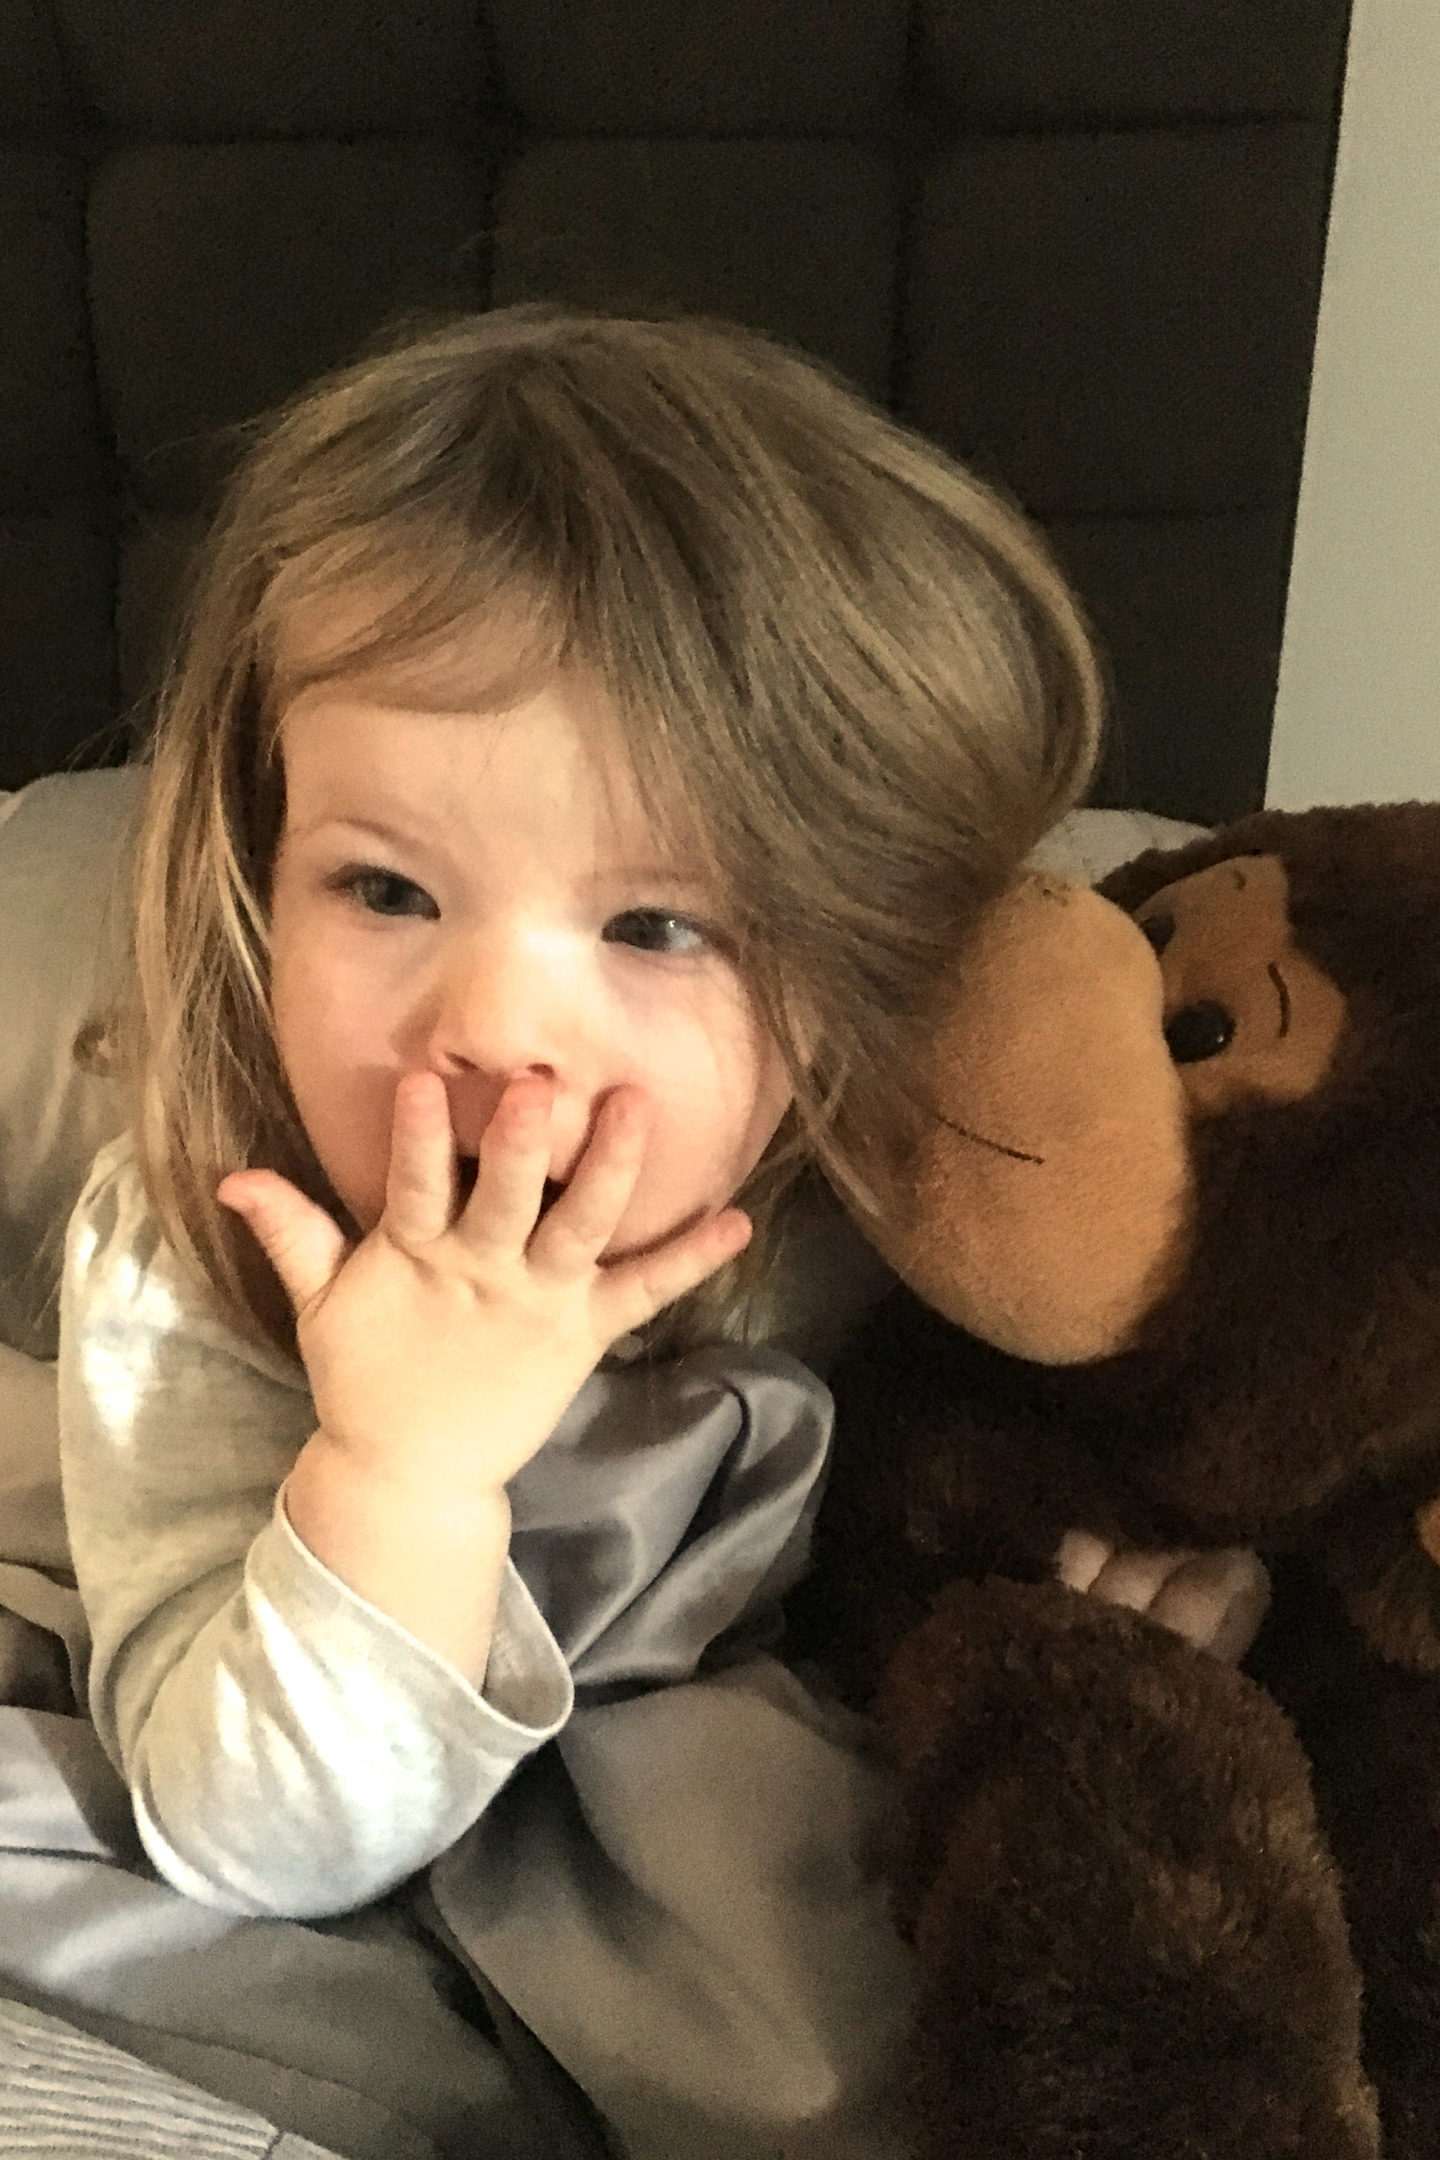 toddler in bed with cuddly monkey, looking surprised with hand over her mouth